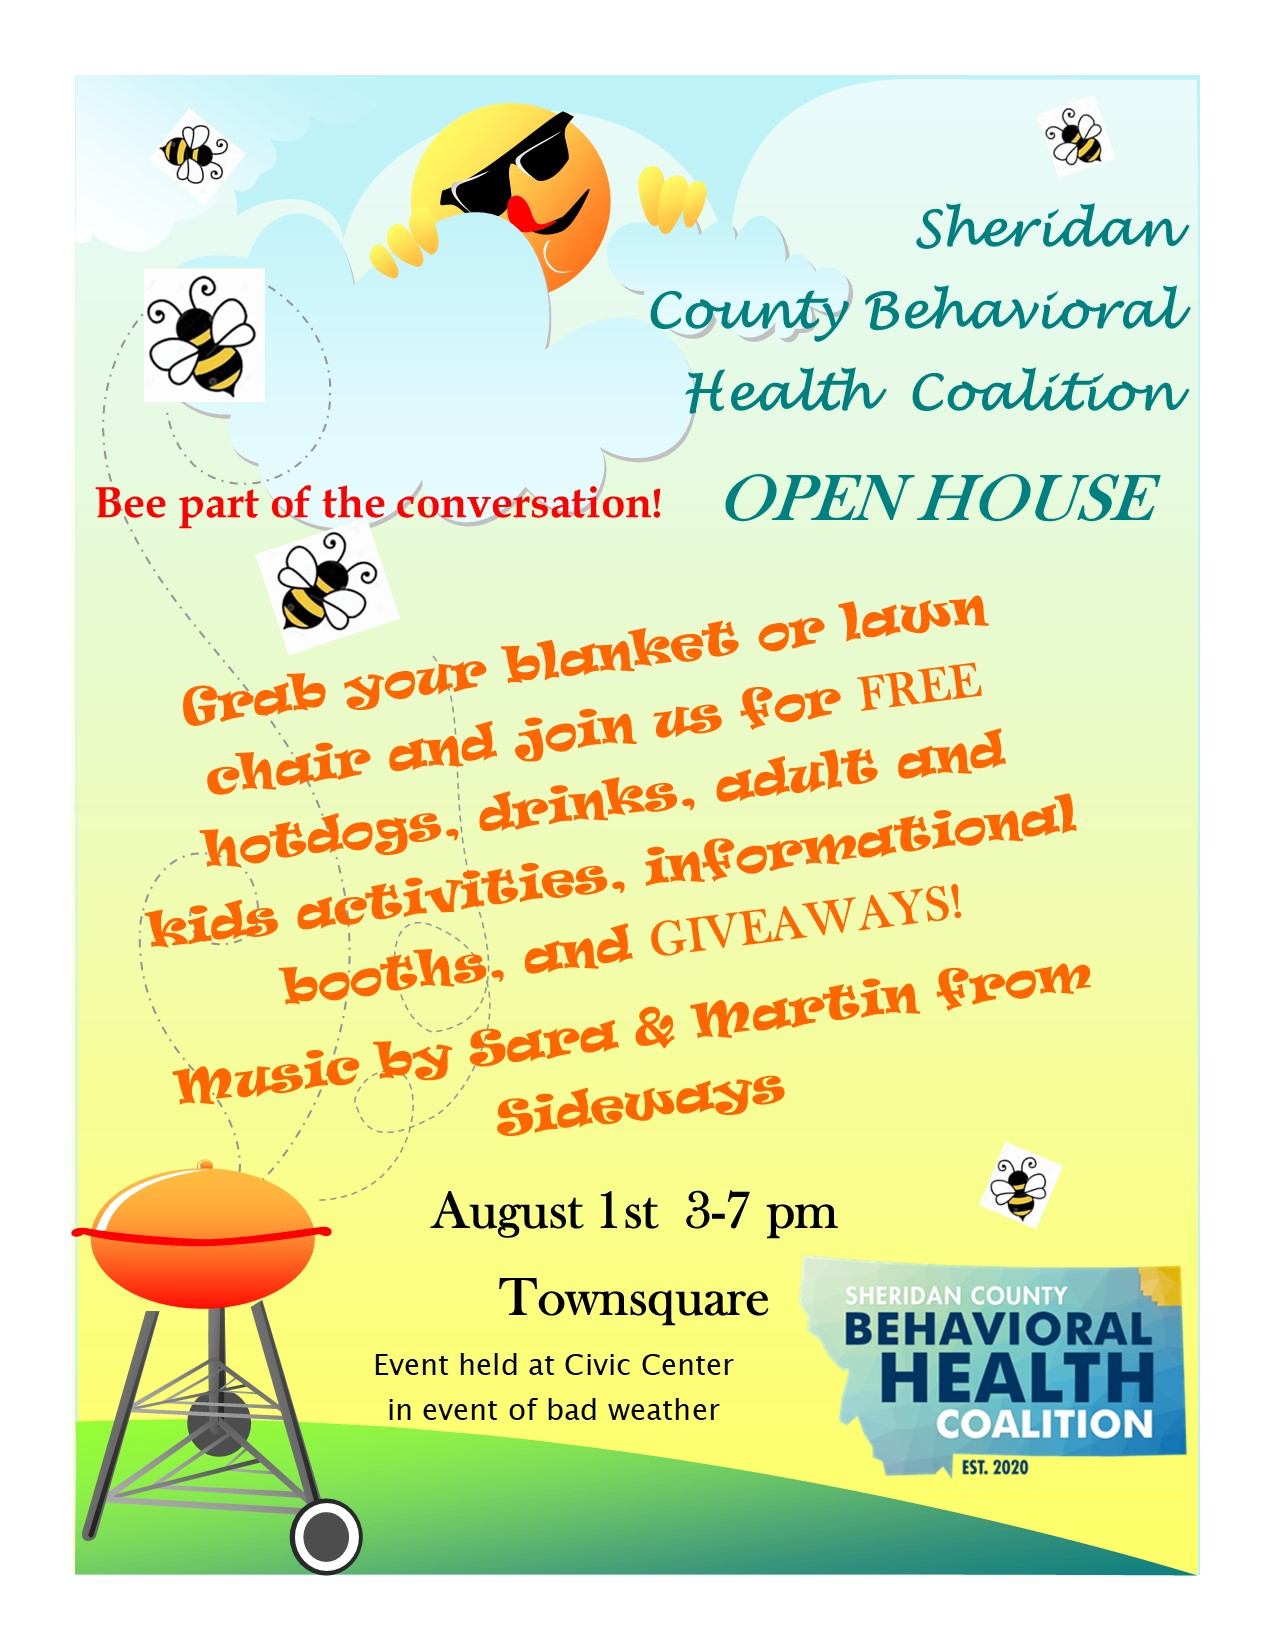 Sheridan County Behavioral Health Coalition Open House Flyer August 1 3 pm - 7 pm Town Square Plentywood